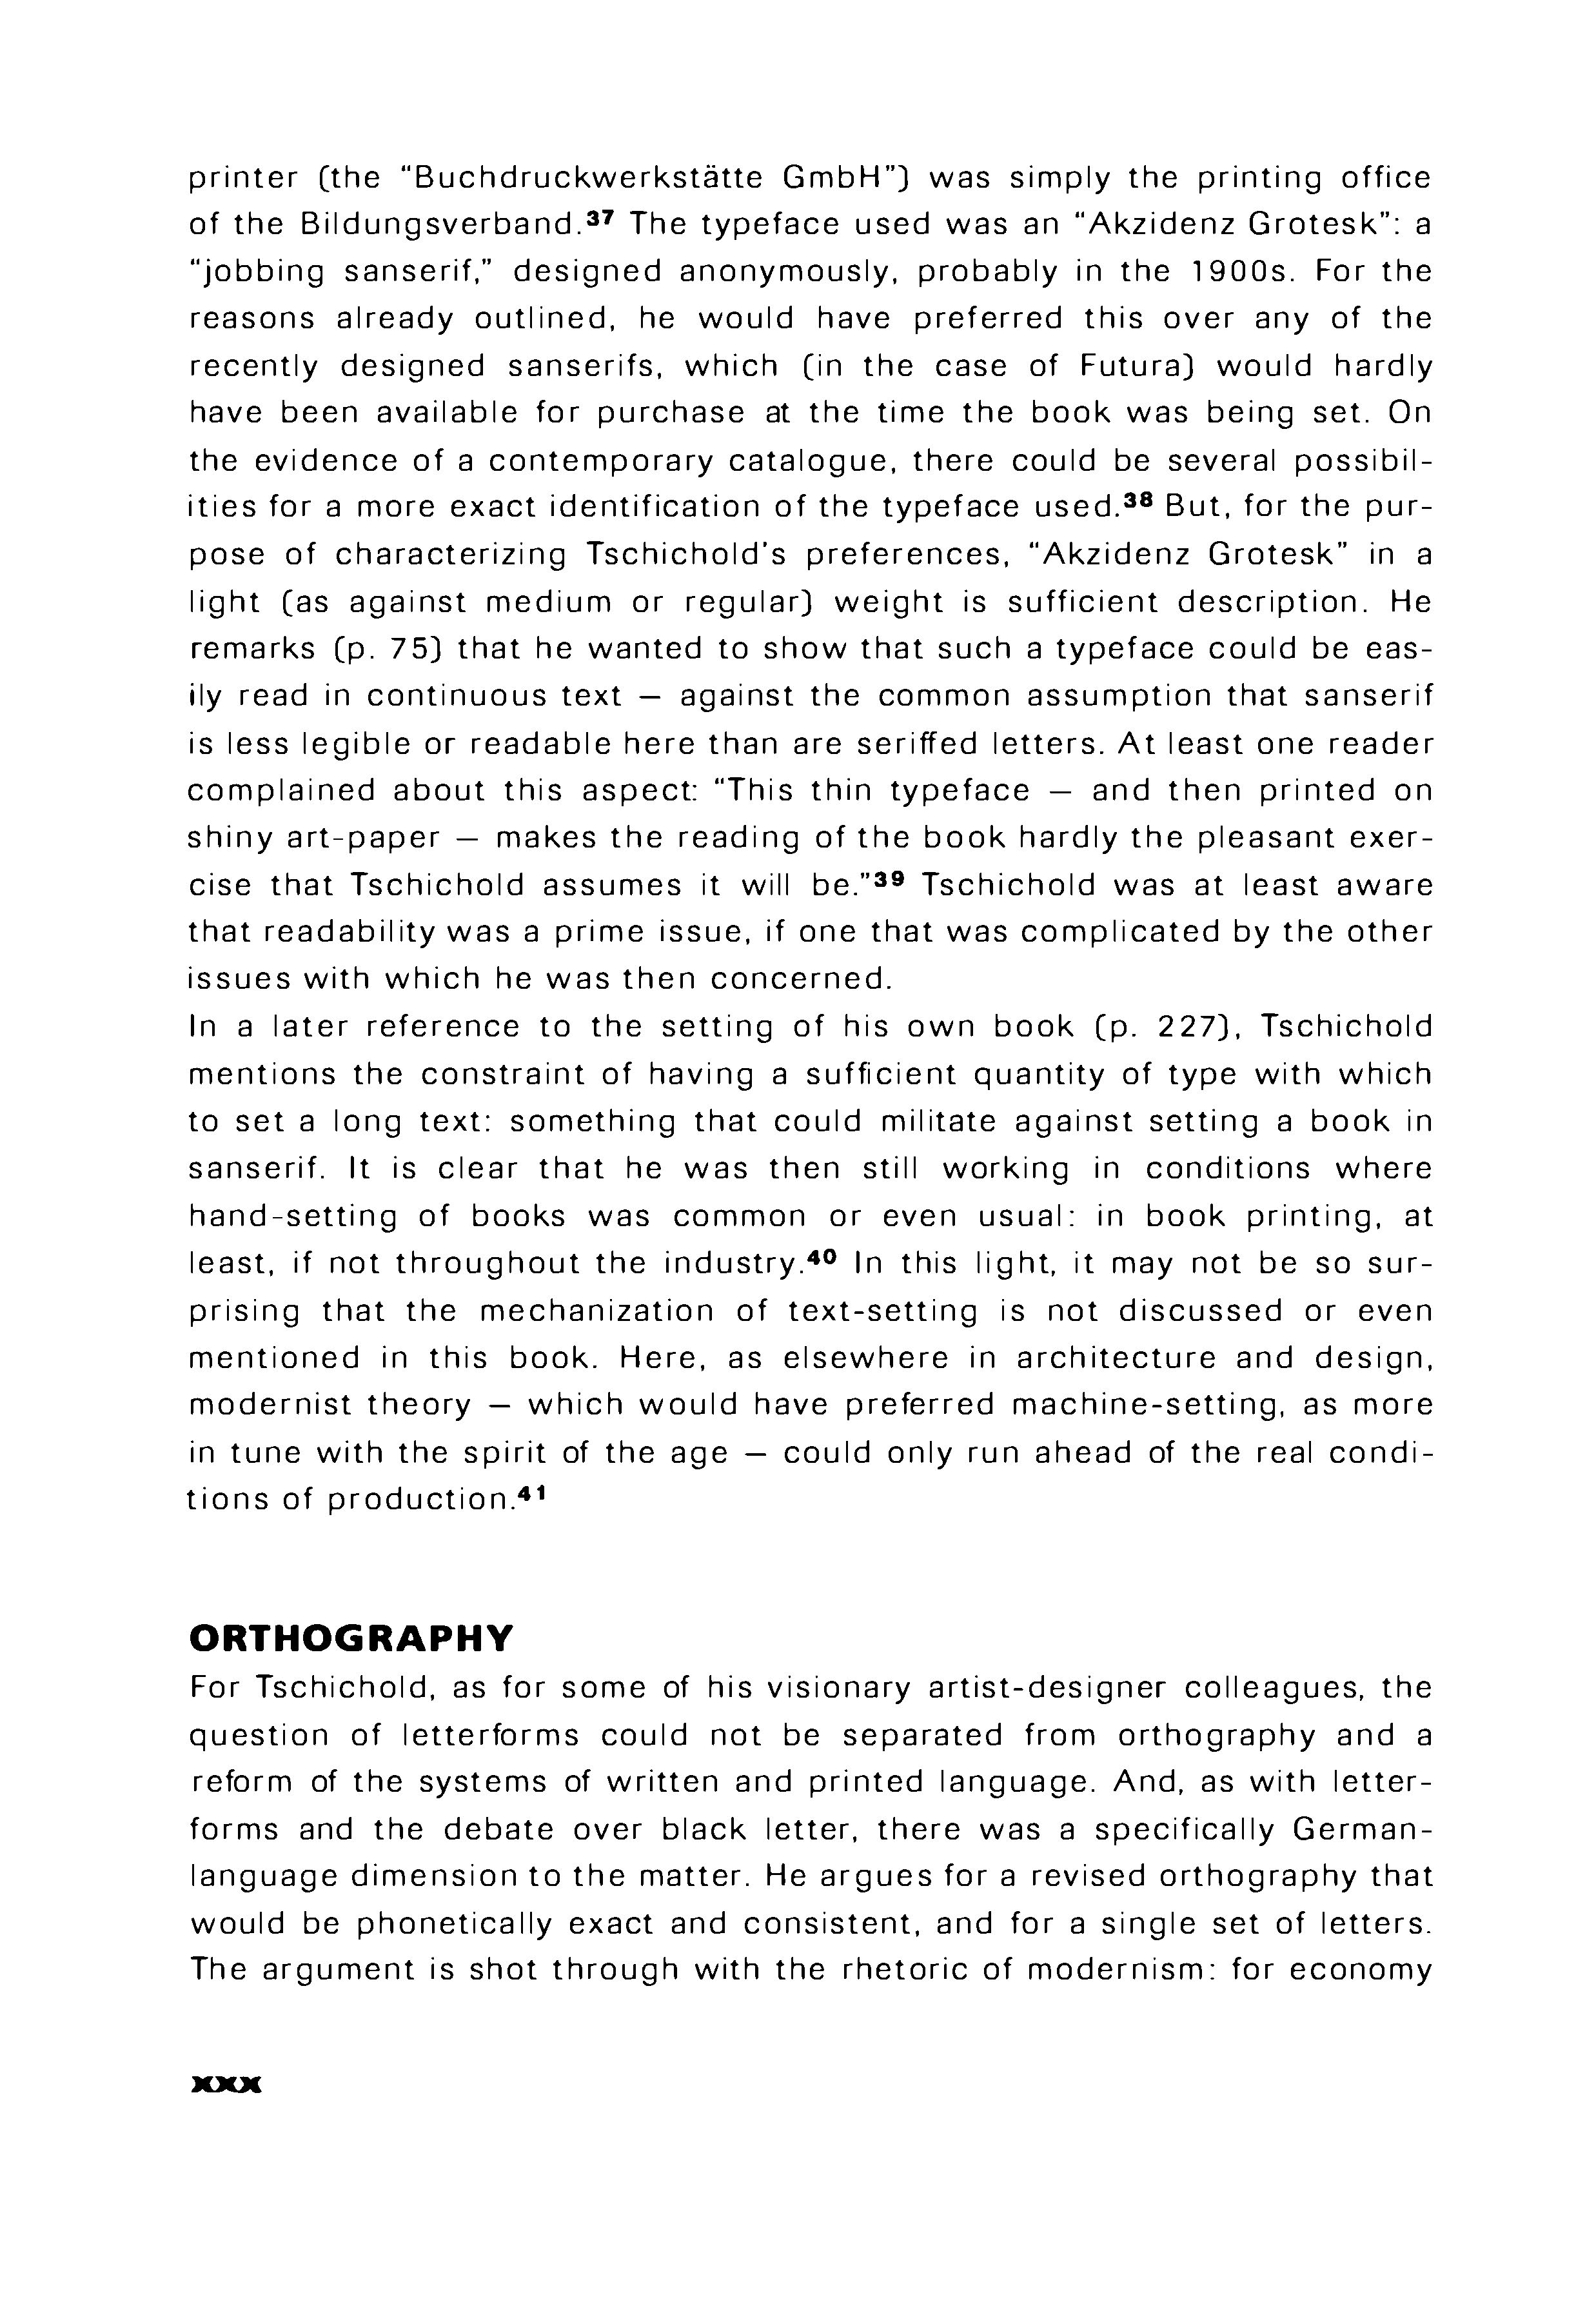 jan-tschichold-the-new-typography-1928_page_030